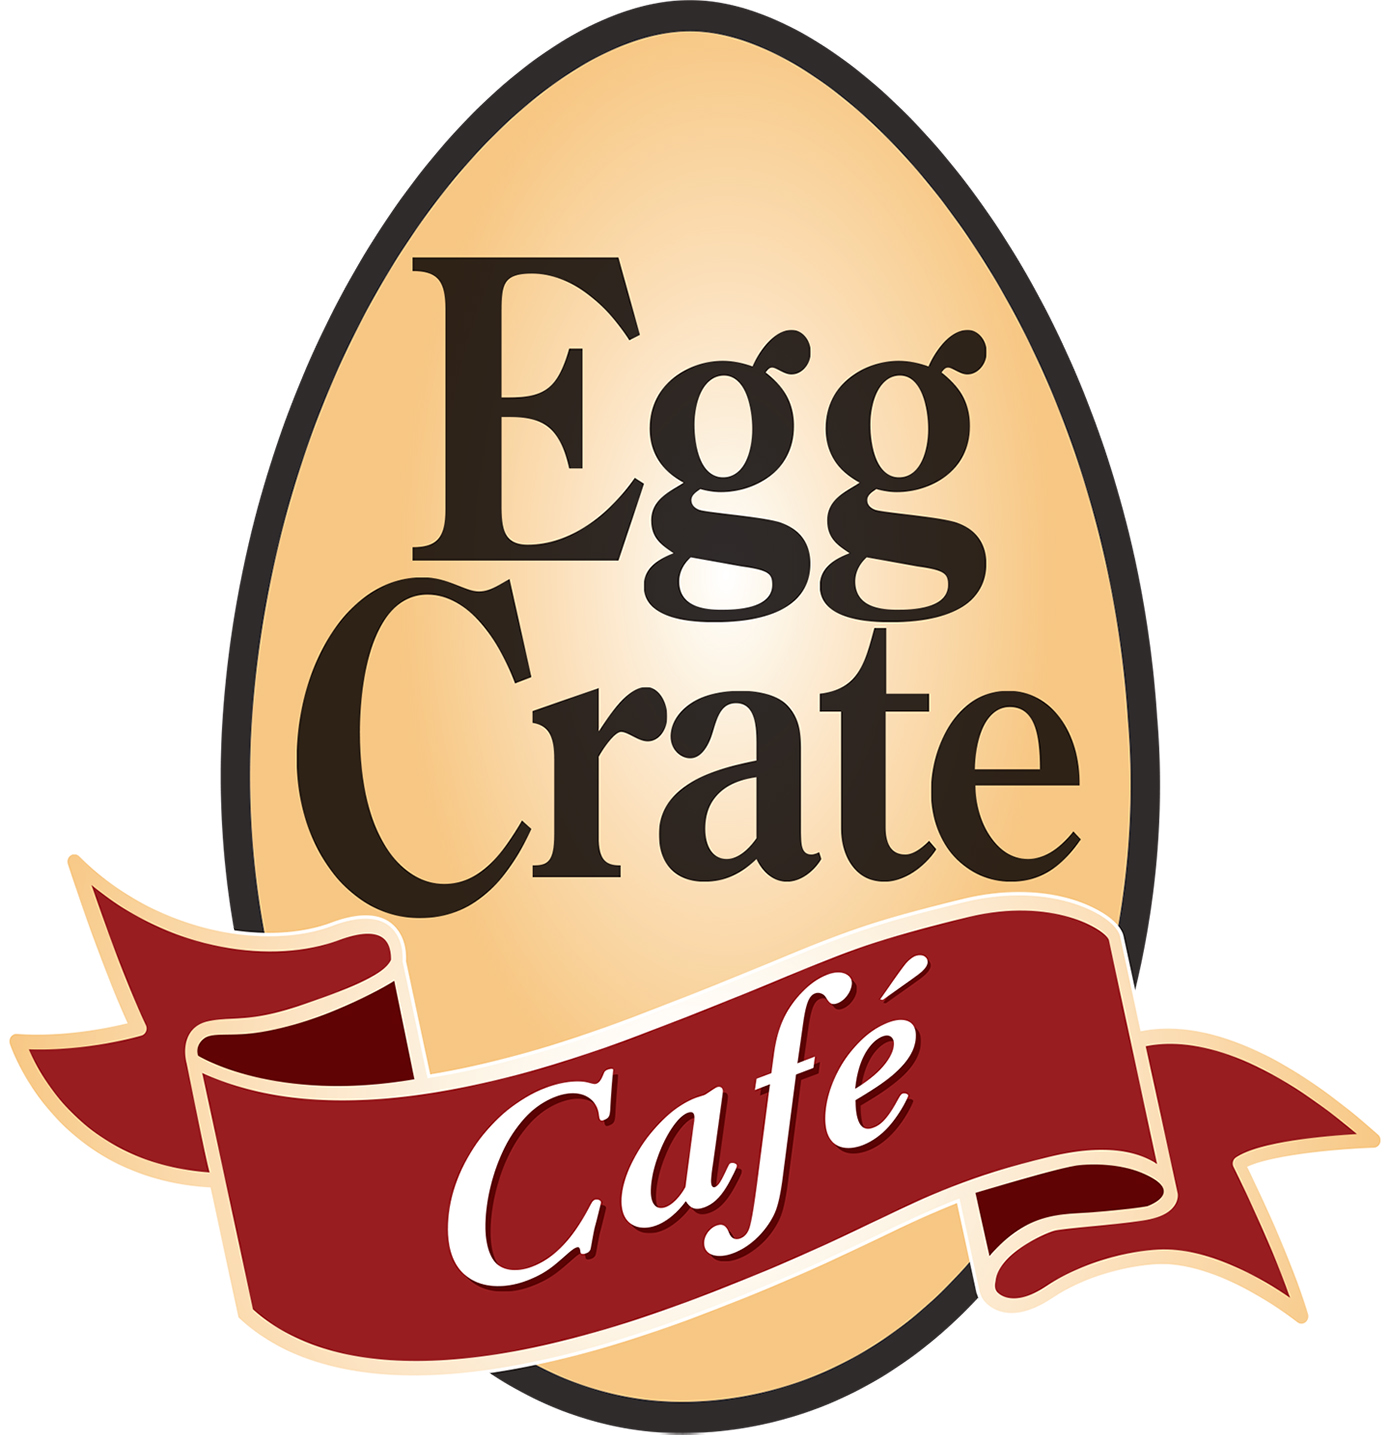 Egg Crate Cafe (West)